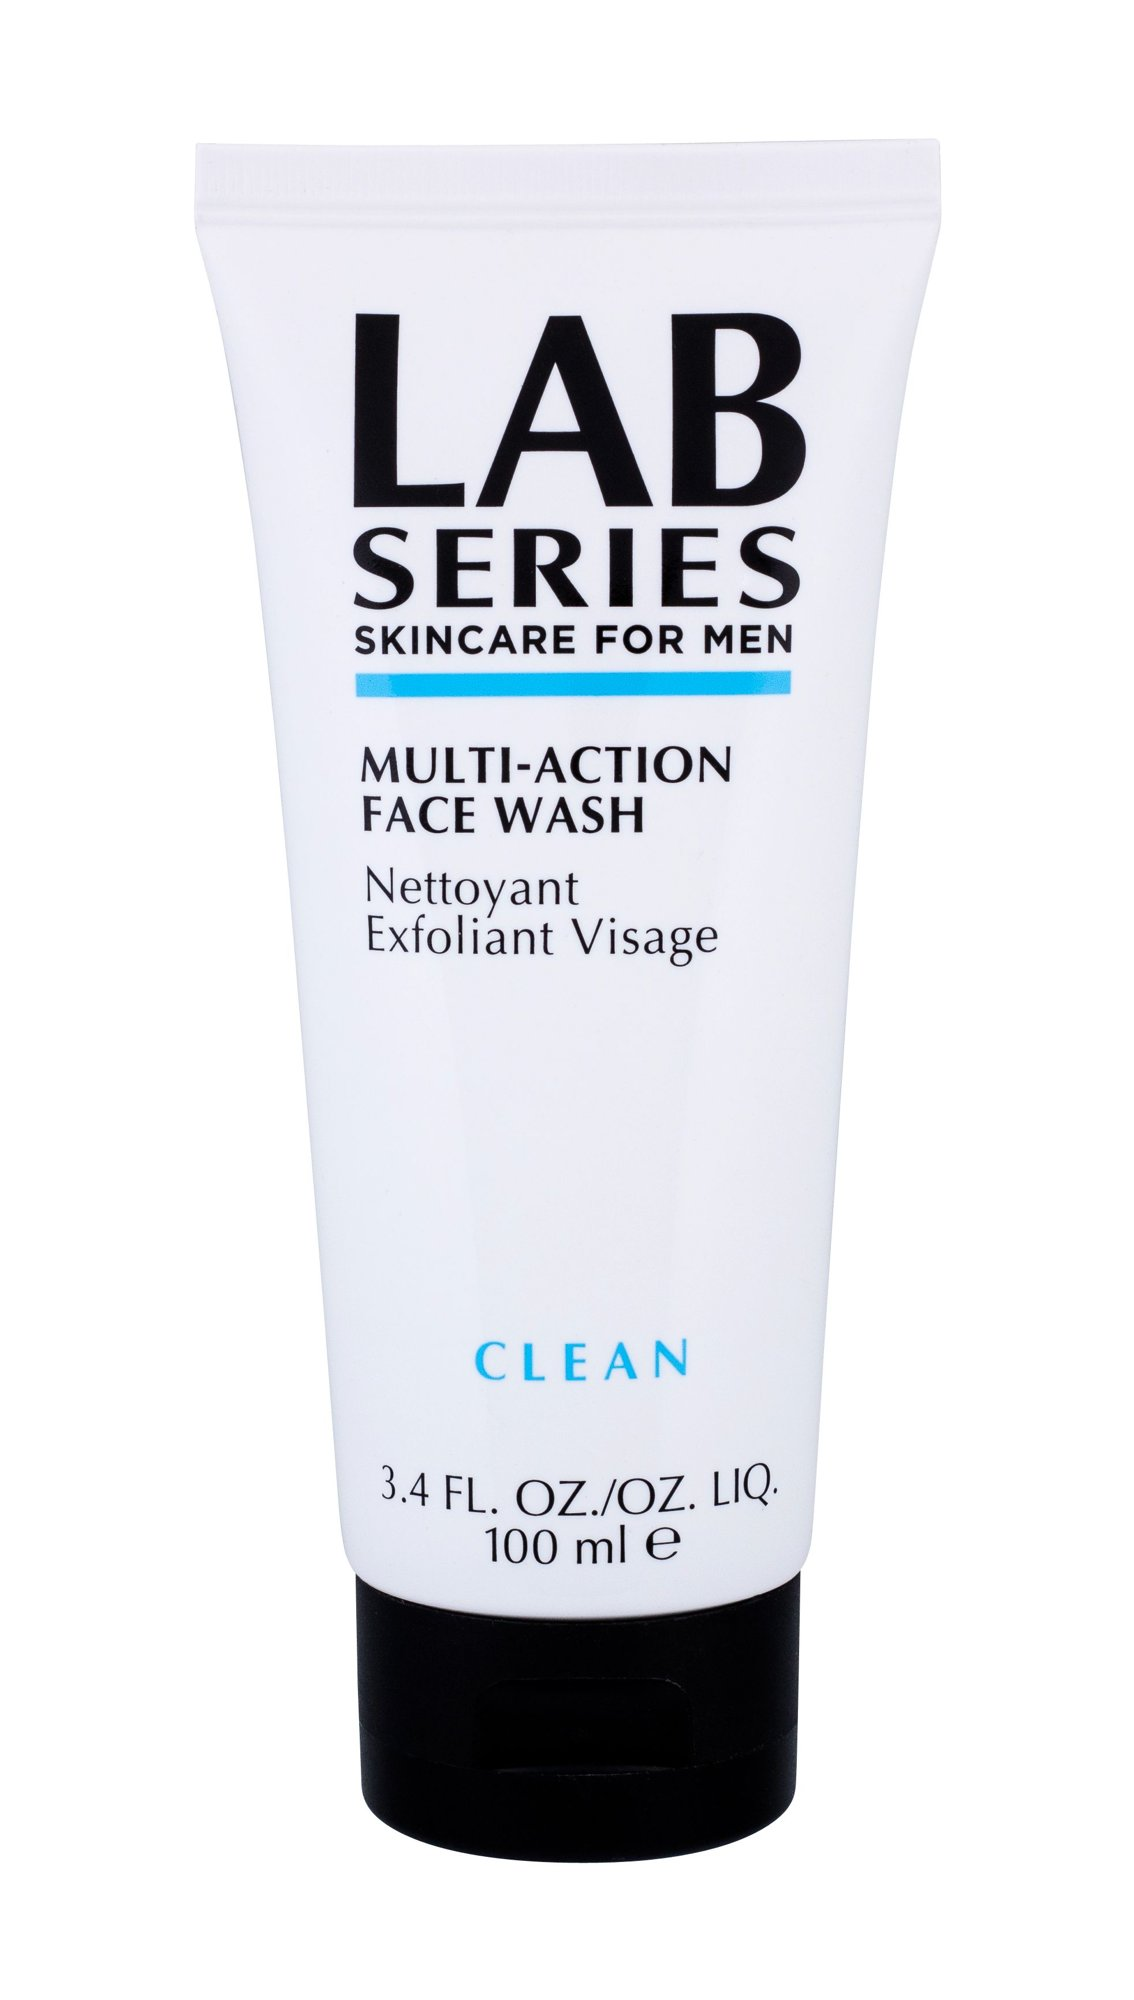 Lab Series Clean Cleansing Cream 100ml  Multi-Action Face Wash